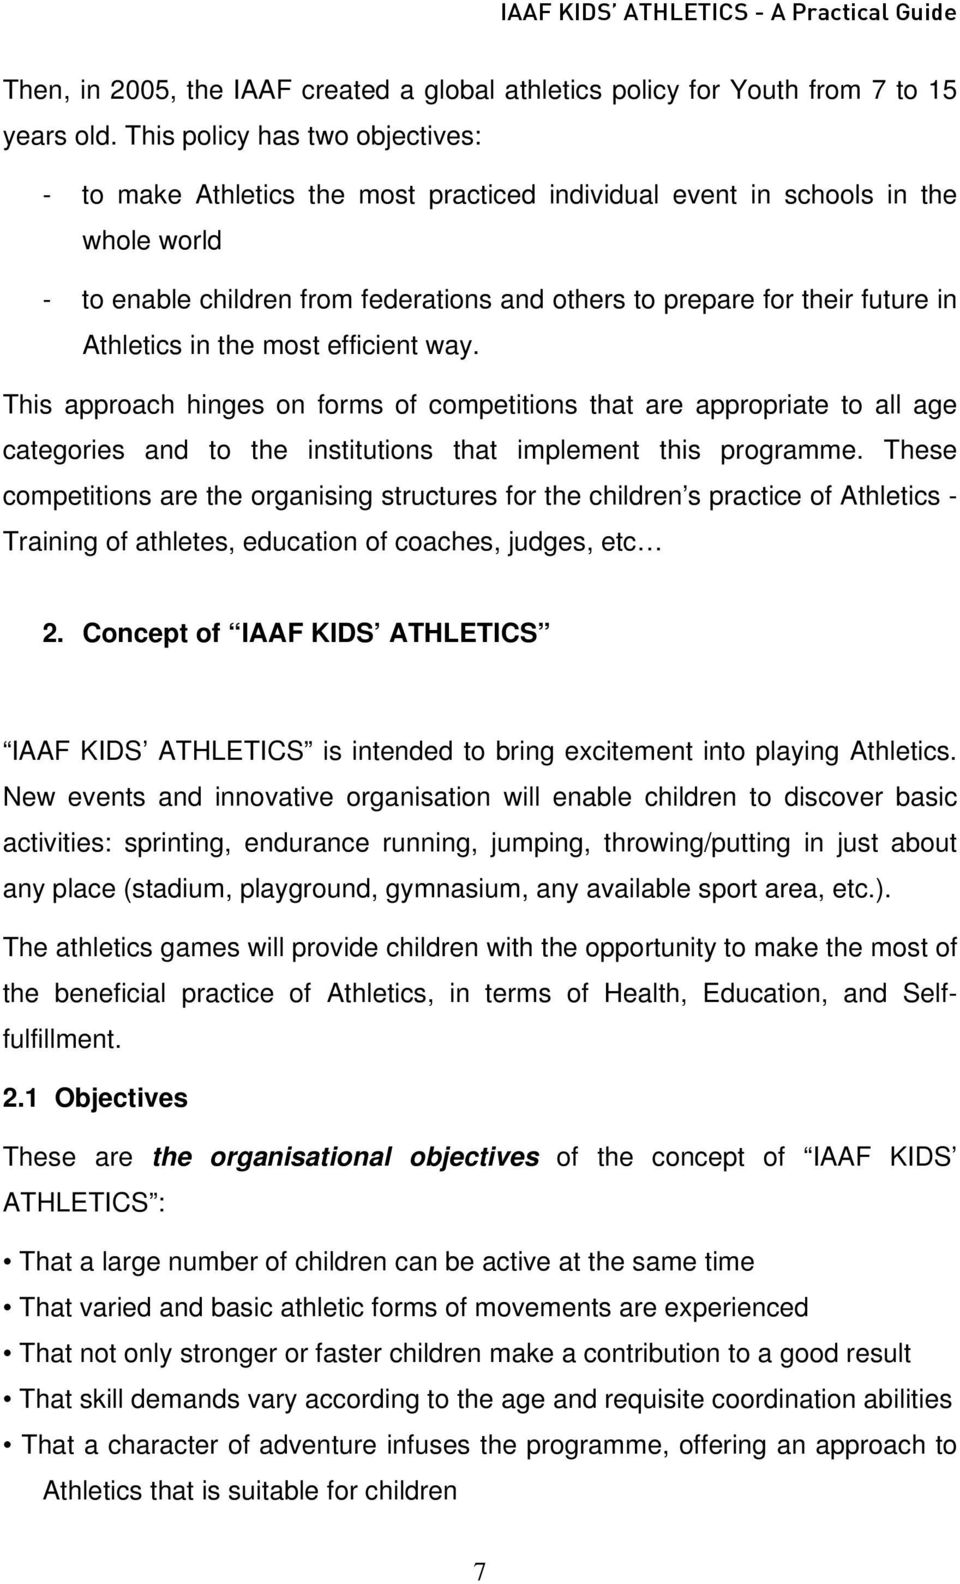 Athletics in the most efficient way. This approach hinges on forms of competitions that are appropriate to all age categories and to the institutions that implement this programme.